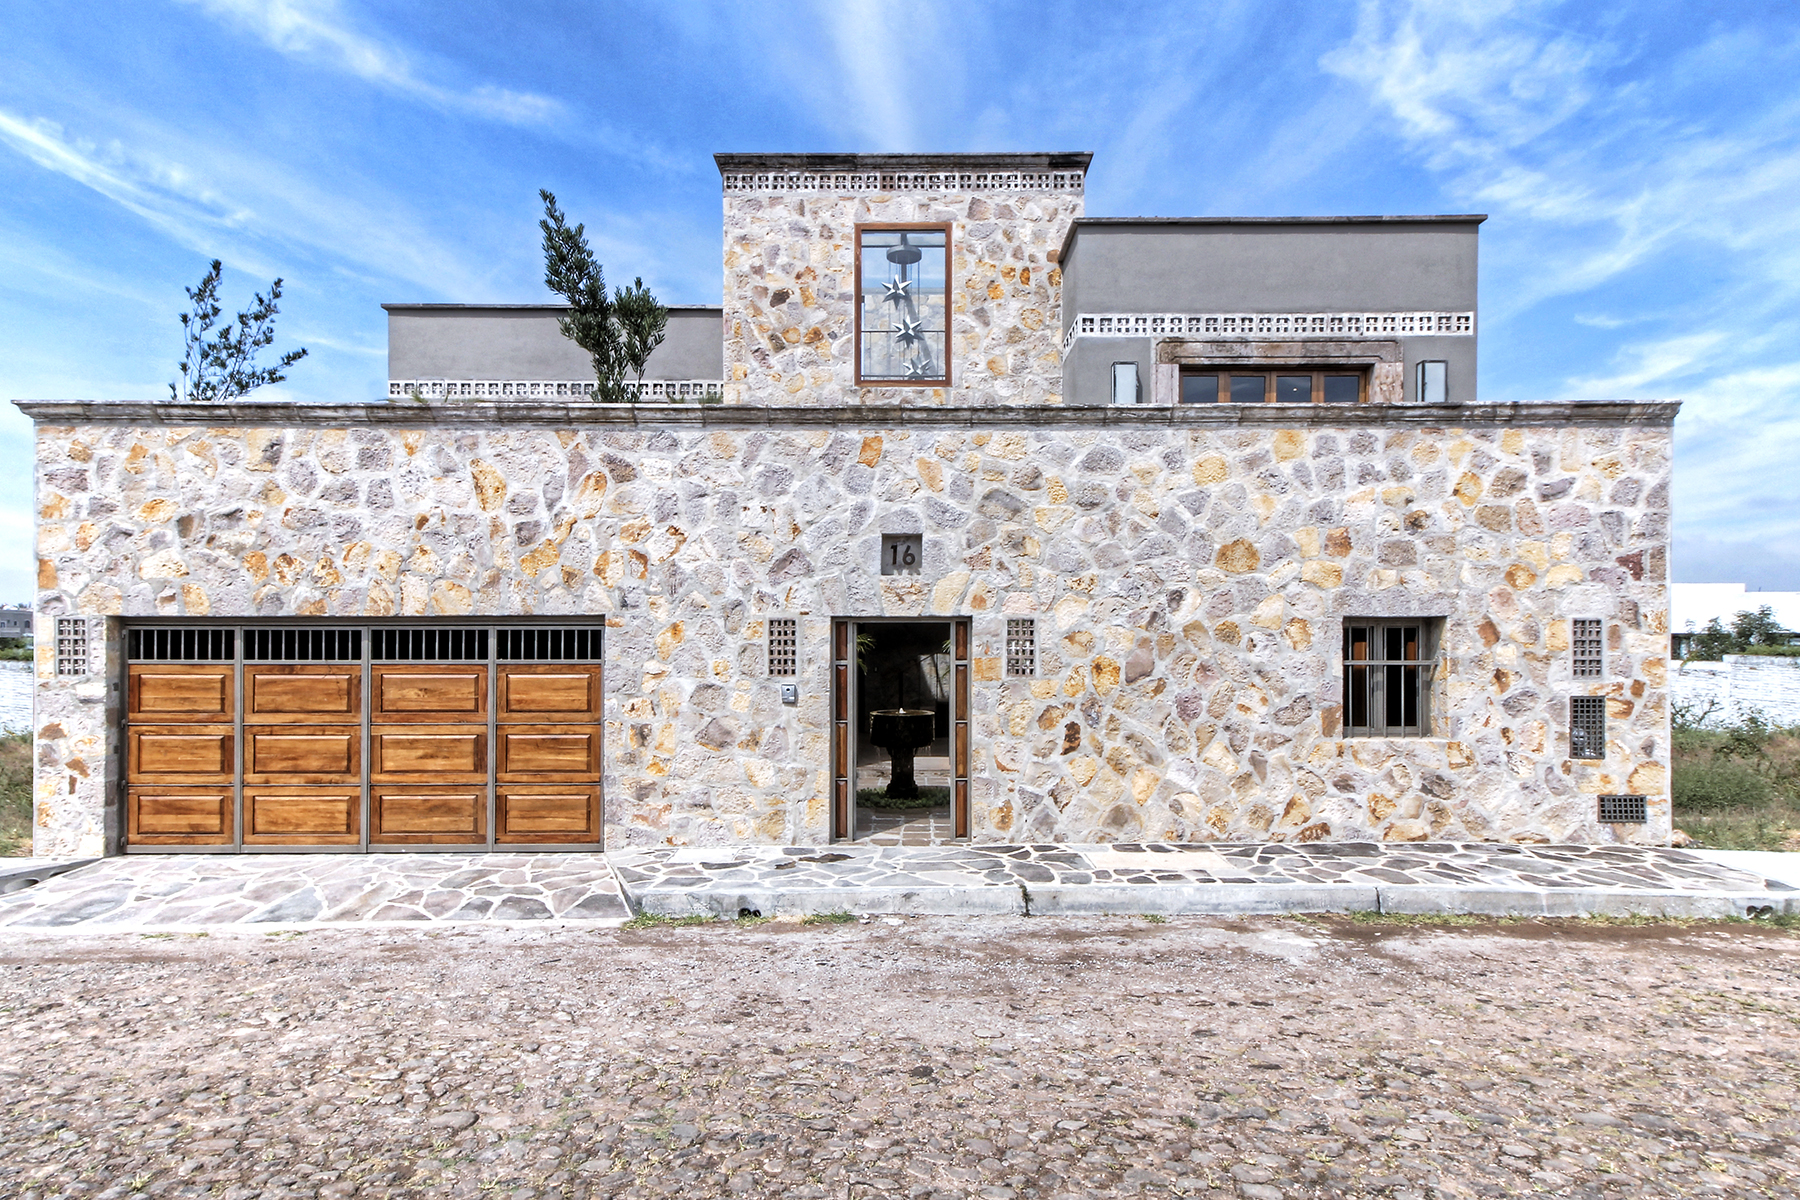 Single Family Home for Sale at Palma de Mallorca Palma de Mallorca Other Guanajuato, Guanajuato 37710 Mexico